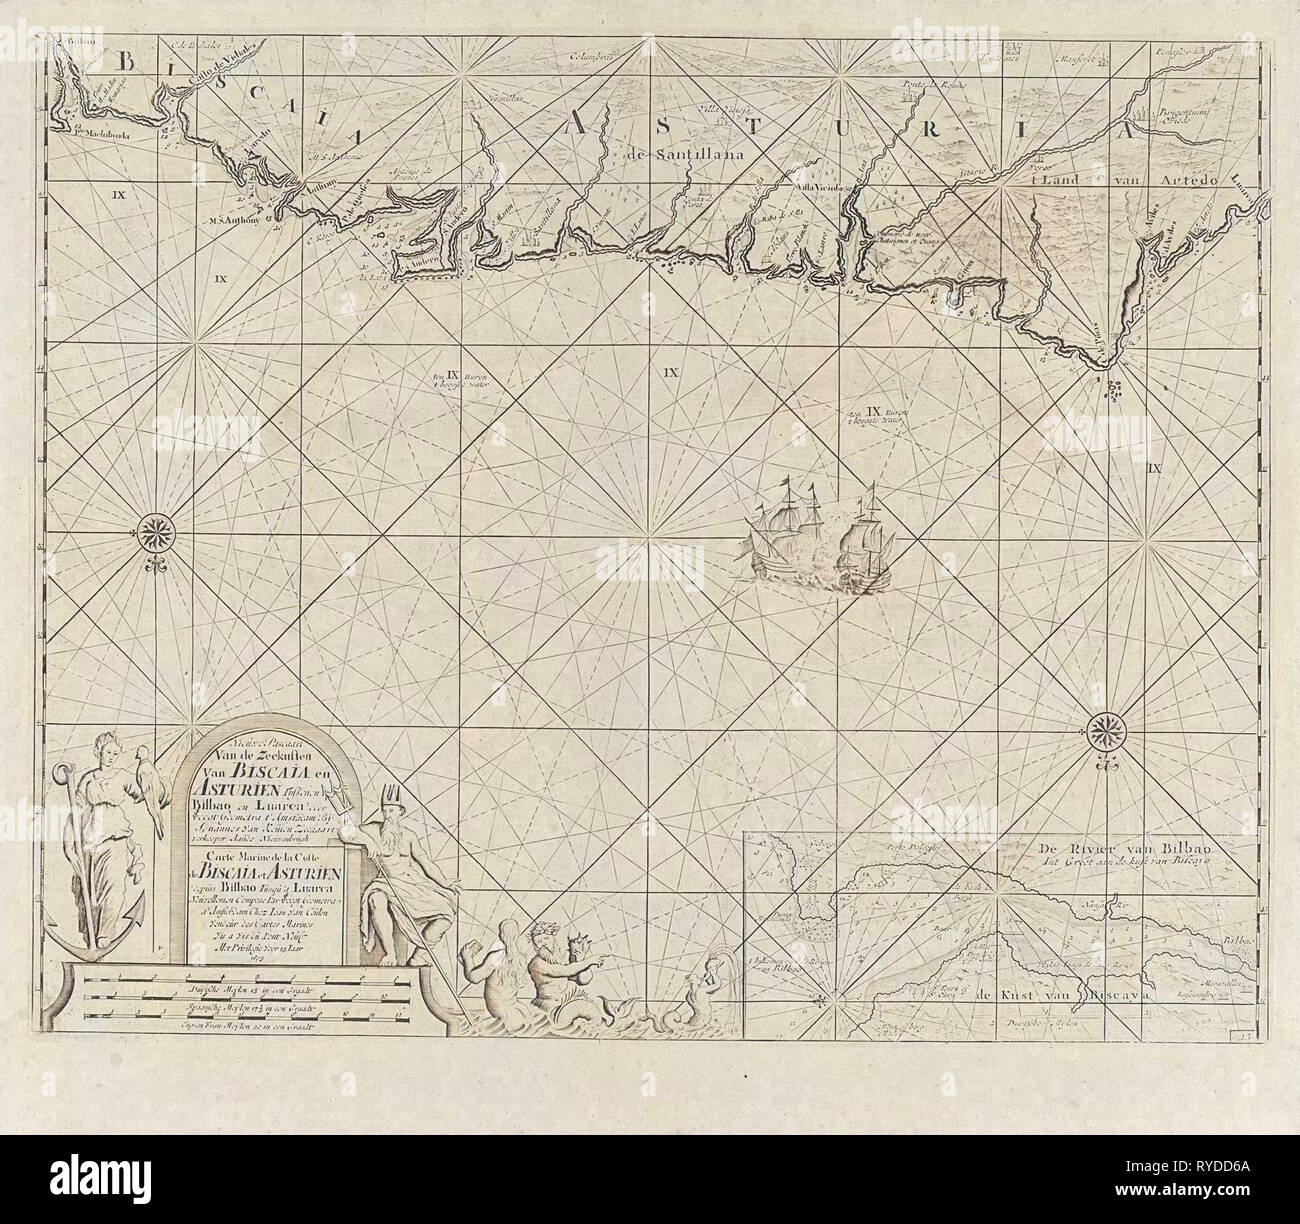 Sea chart of a portion of the Bay of Biscay in Bilbao, Anonymous, Claes Jansz Voogt, Johannes van Keulen (II), 1734 - 1803 - Stock Image